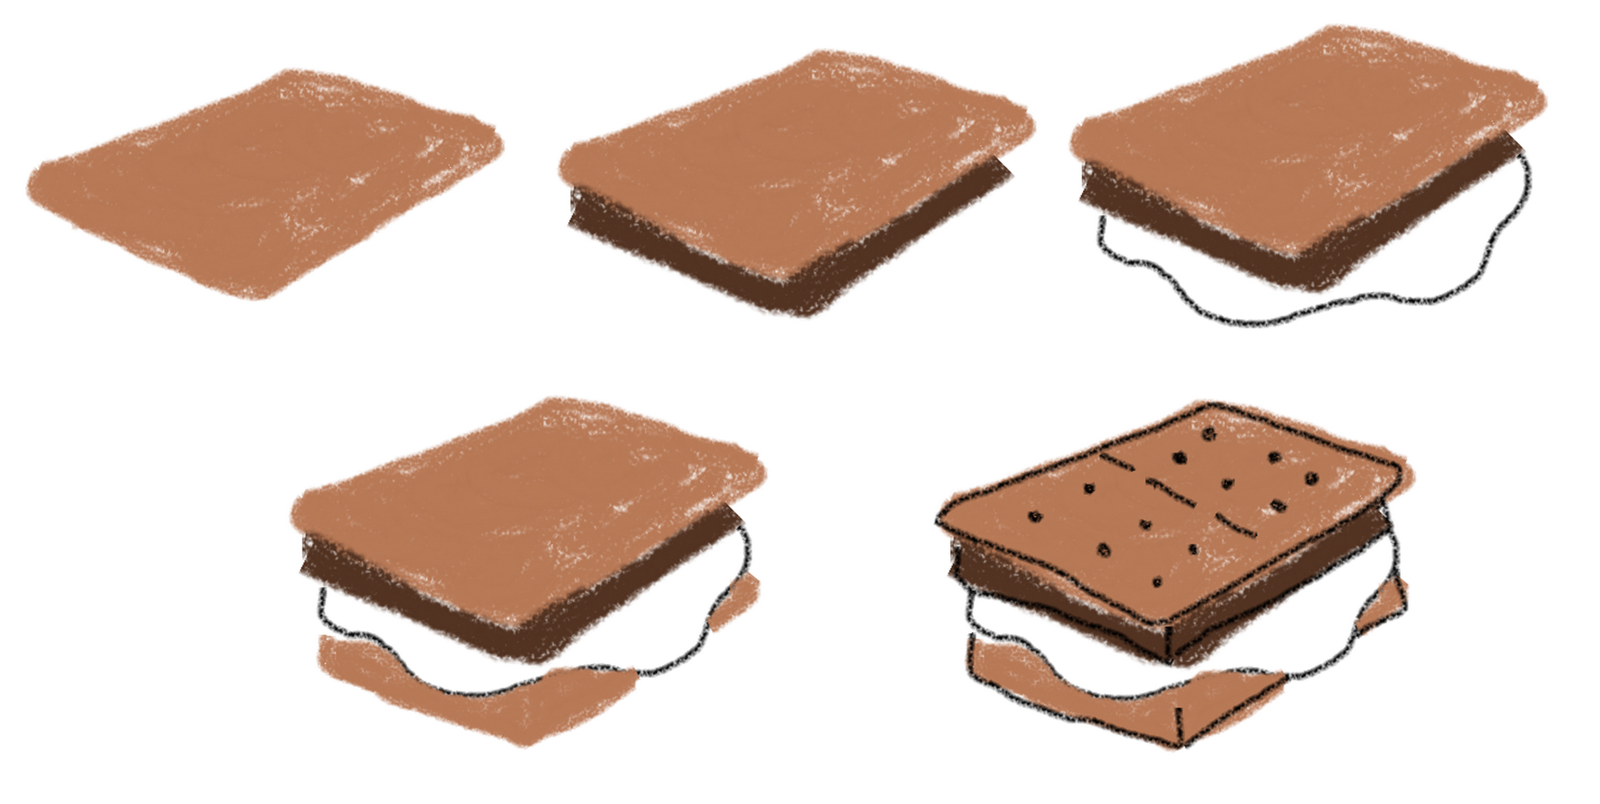 how to draw on food: s'mores on self-reflective jumbo marshmallows